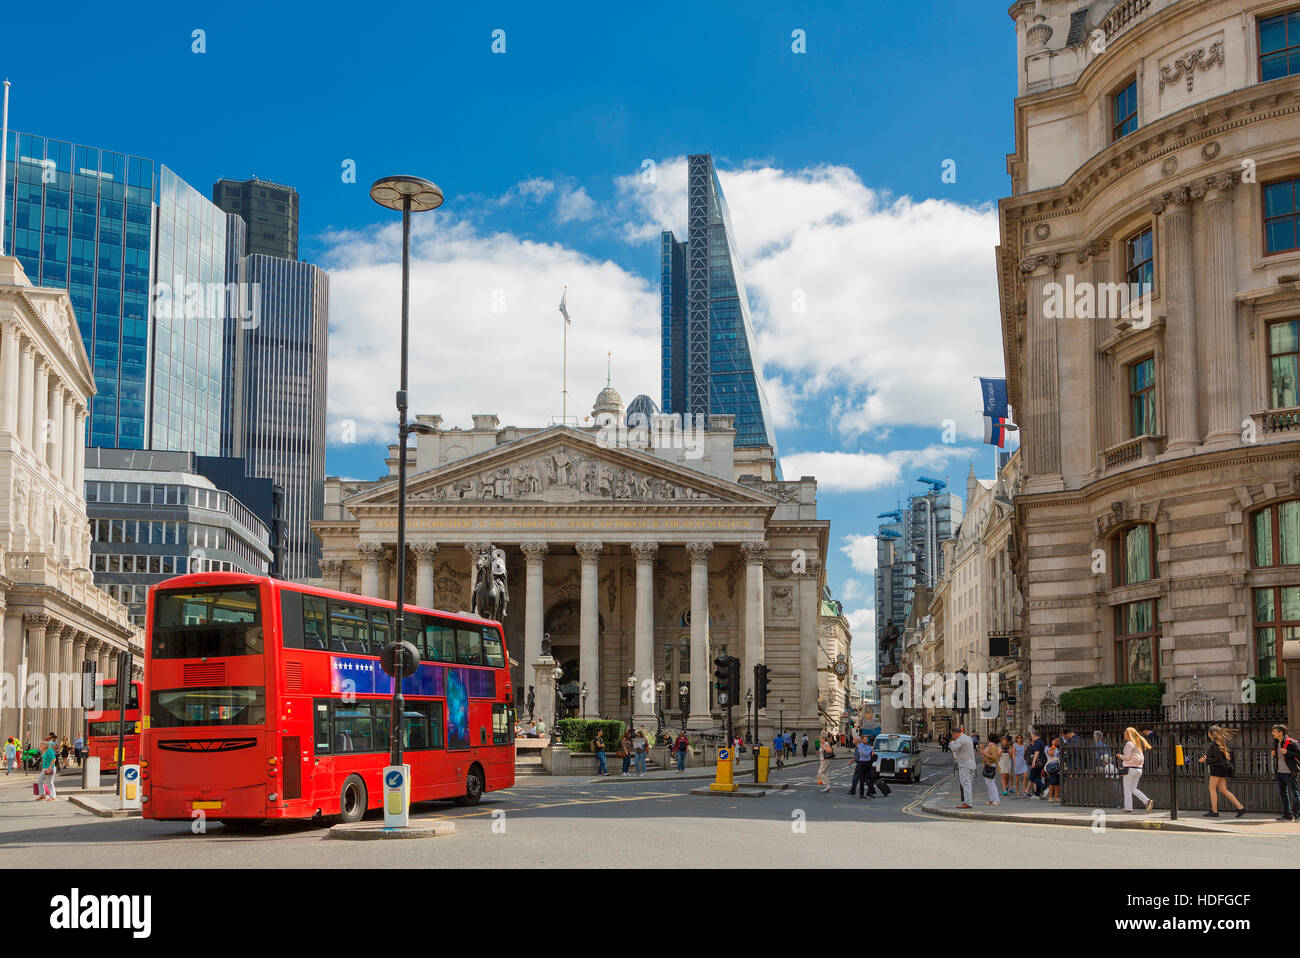 LONDON, UK - August 11, 2016: View of British financial heart, Bank of England and Royal Exchange. - Stock Image